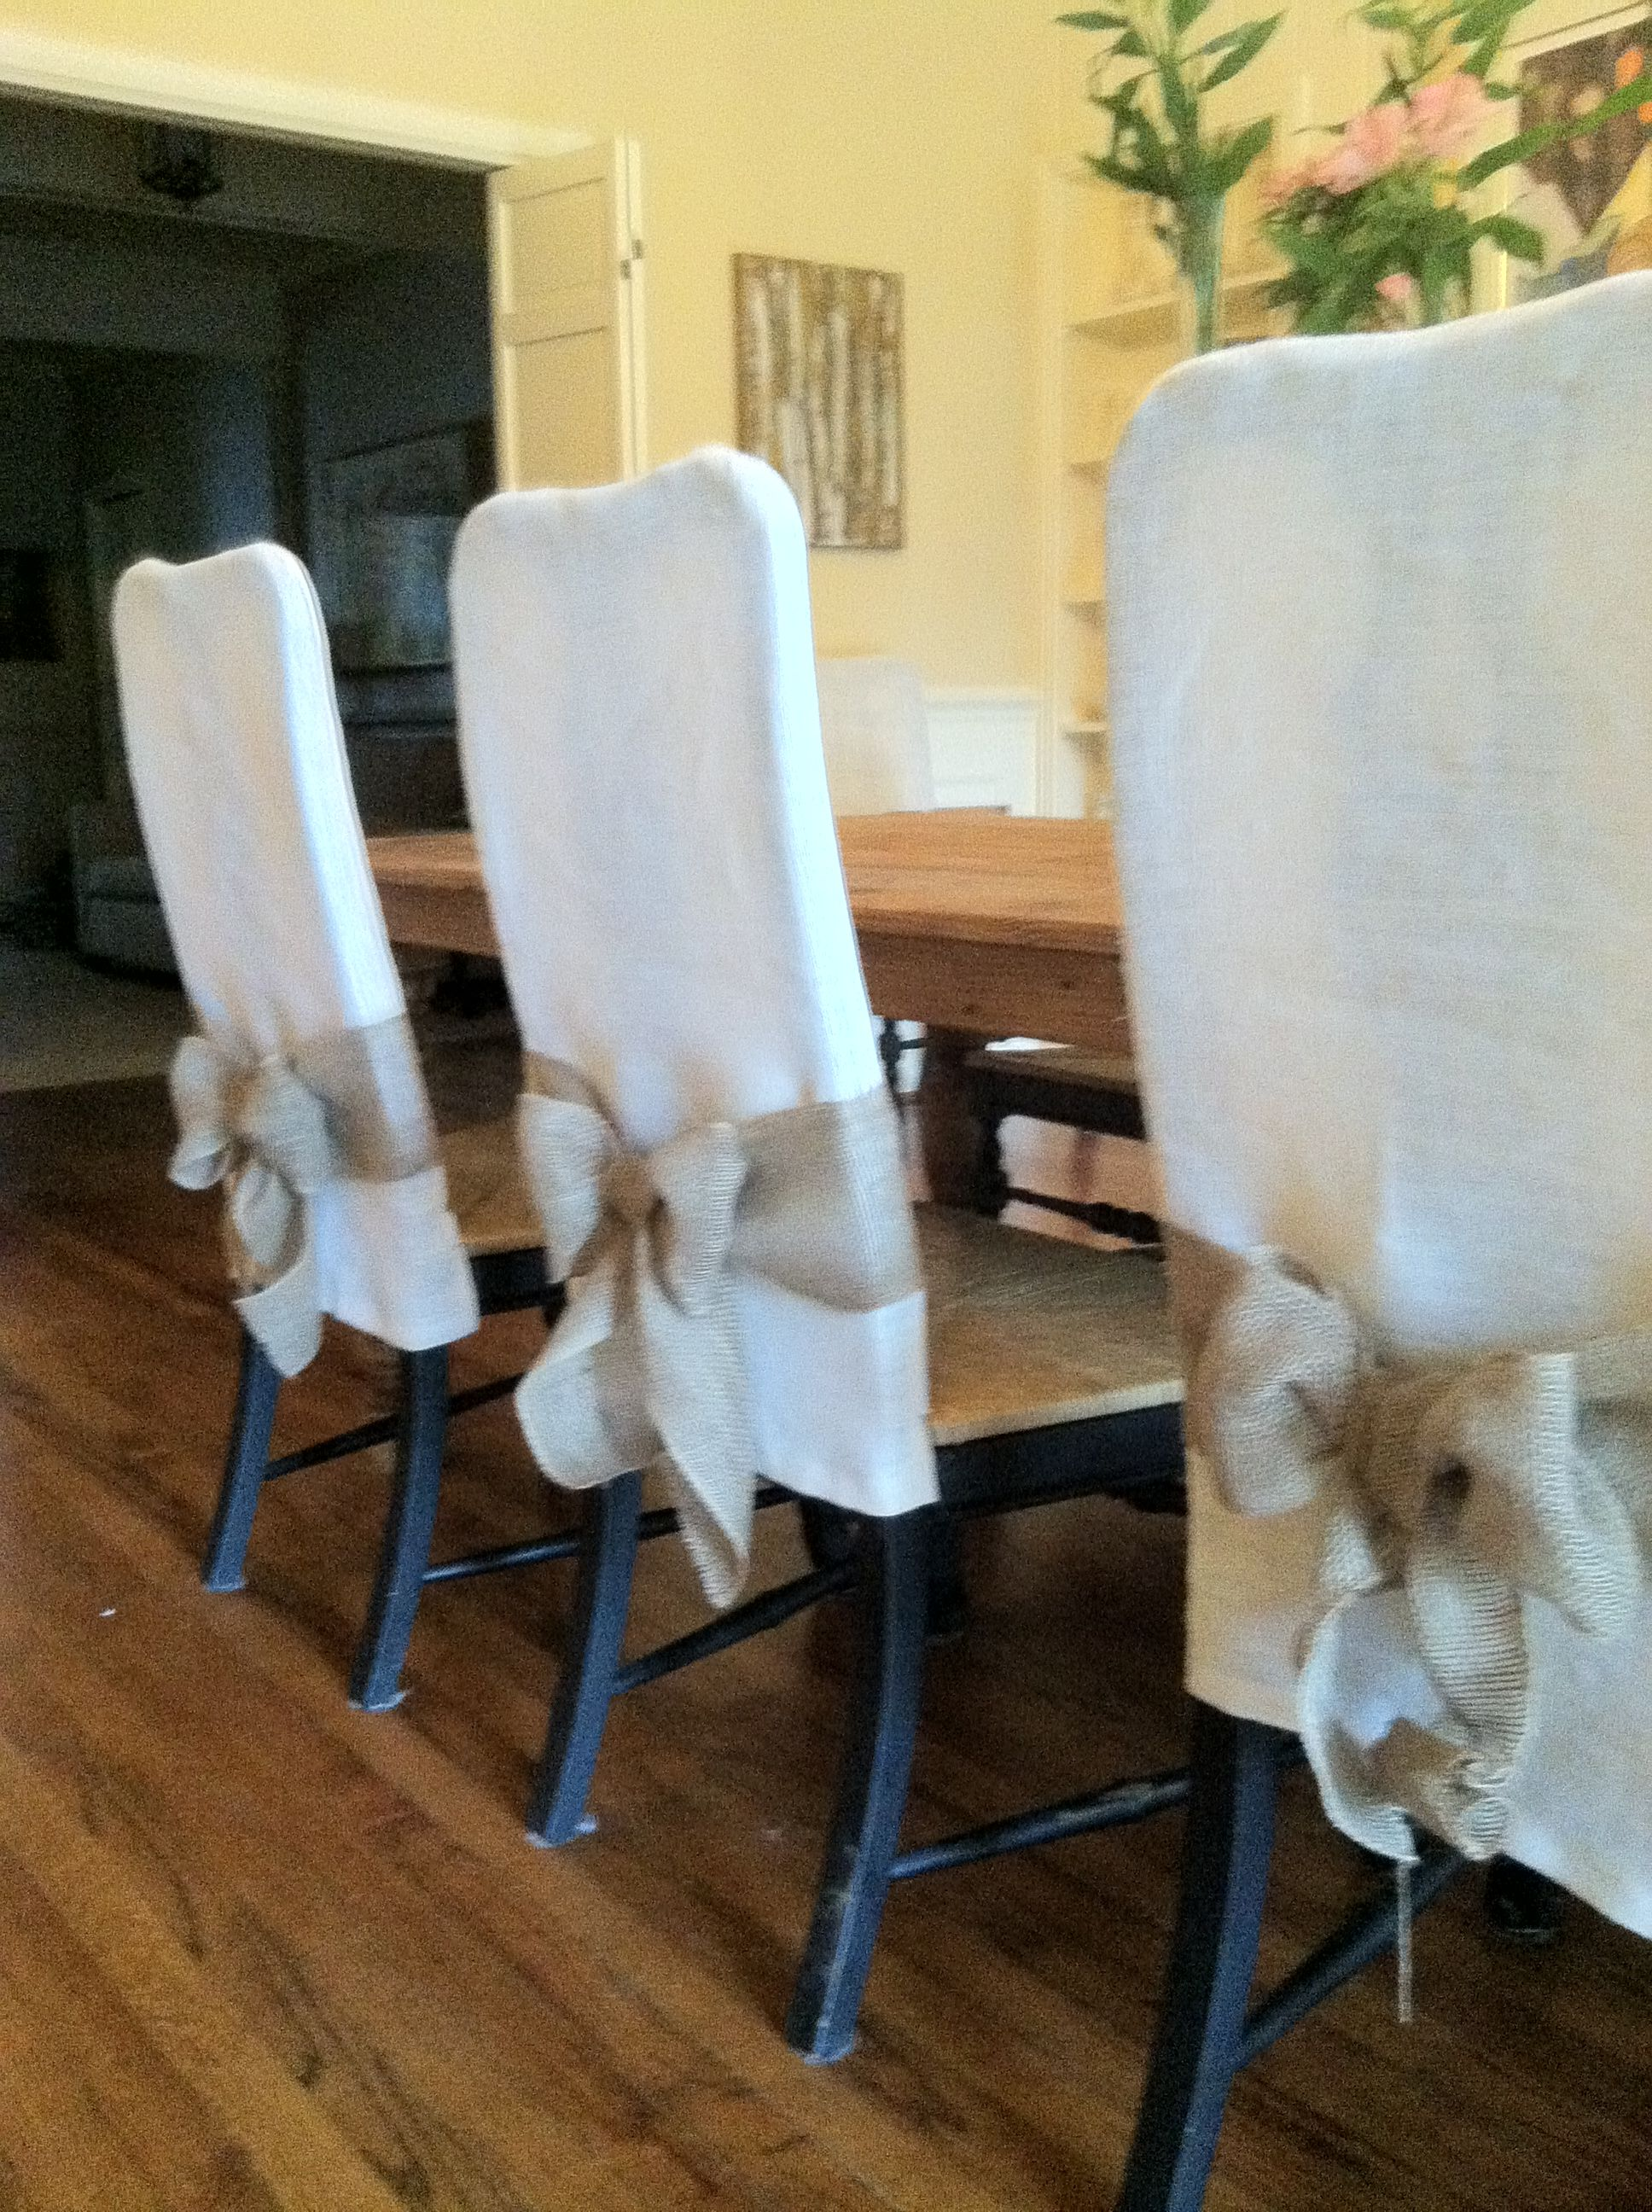 Summer Dining Chair Slipcovers In 2020 Dining Room Chair Slipcovers Dining Room Chair Covers Slipcovers For Chairs